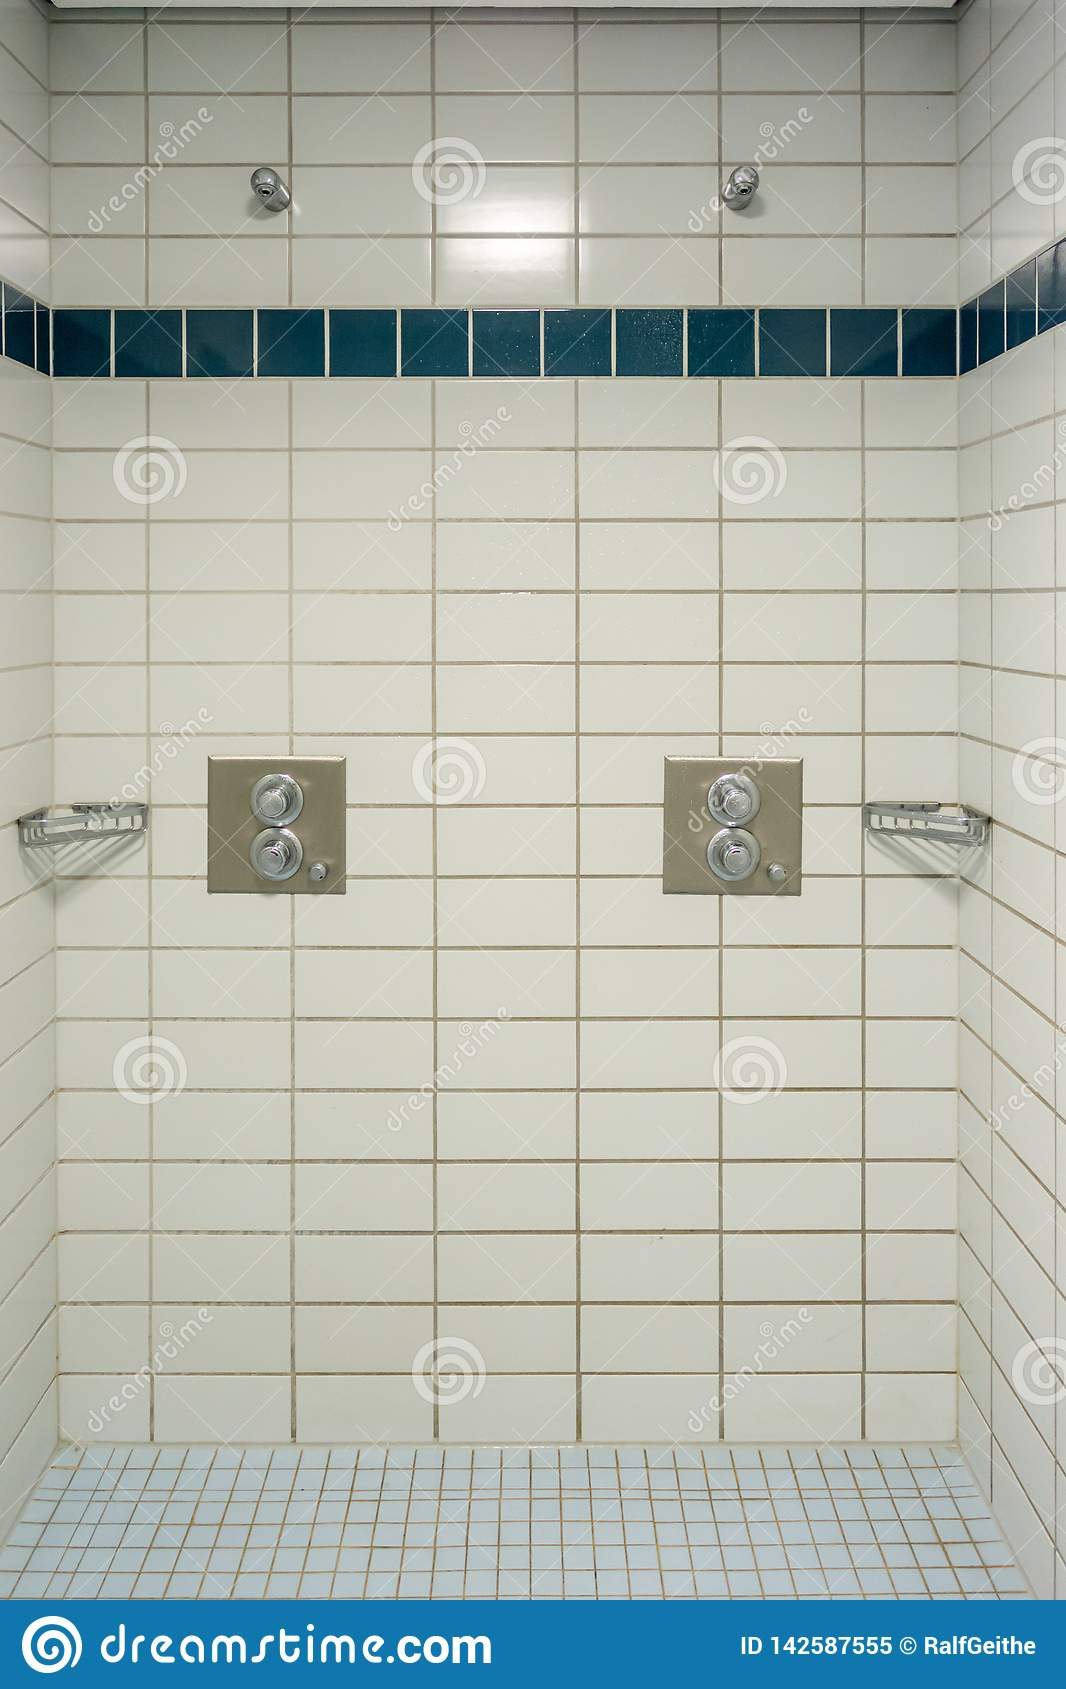 several showers in a fully tiled shower